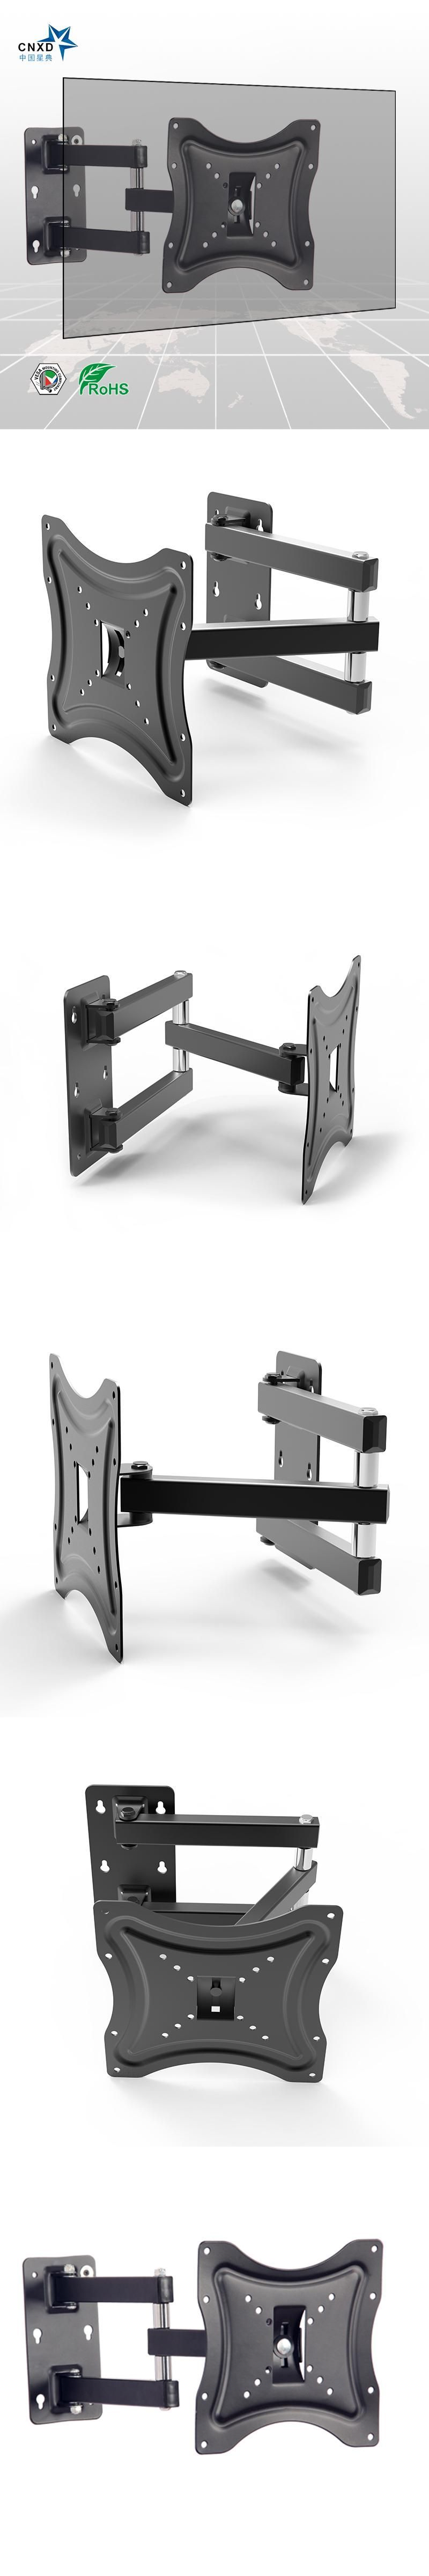 Articulating Full Motion TV Wall Mount TV Bracket Suitable TV Size 25u0027u002732u0027